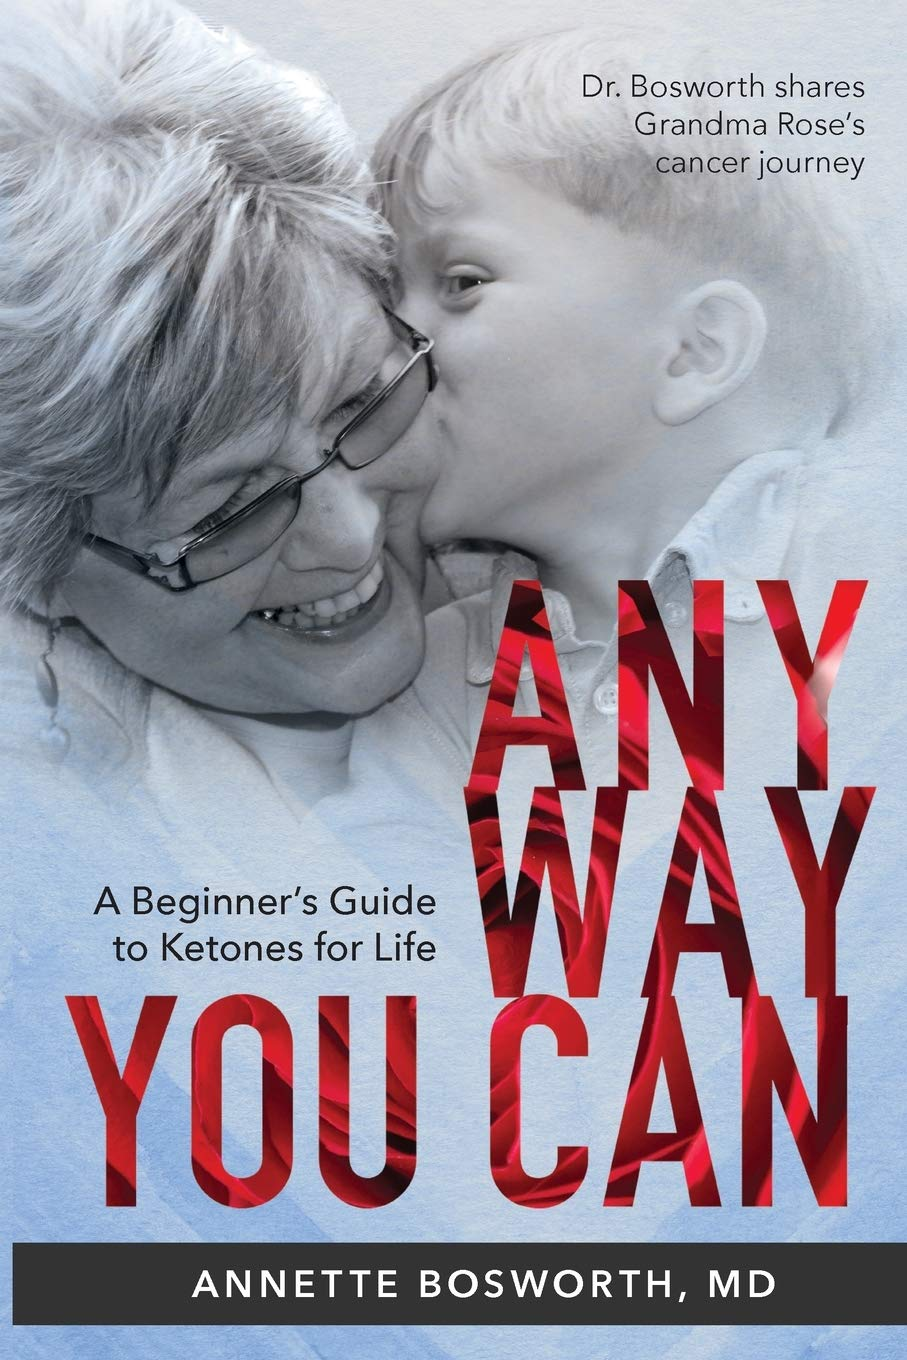 Image OfANYWAY YOU CAN: Doctor Bosworth Shares Her Mom's Cancer Journey: A BEGINNER'S GUIDE TO KETONES FOR LIFE